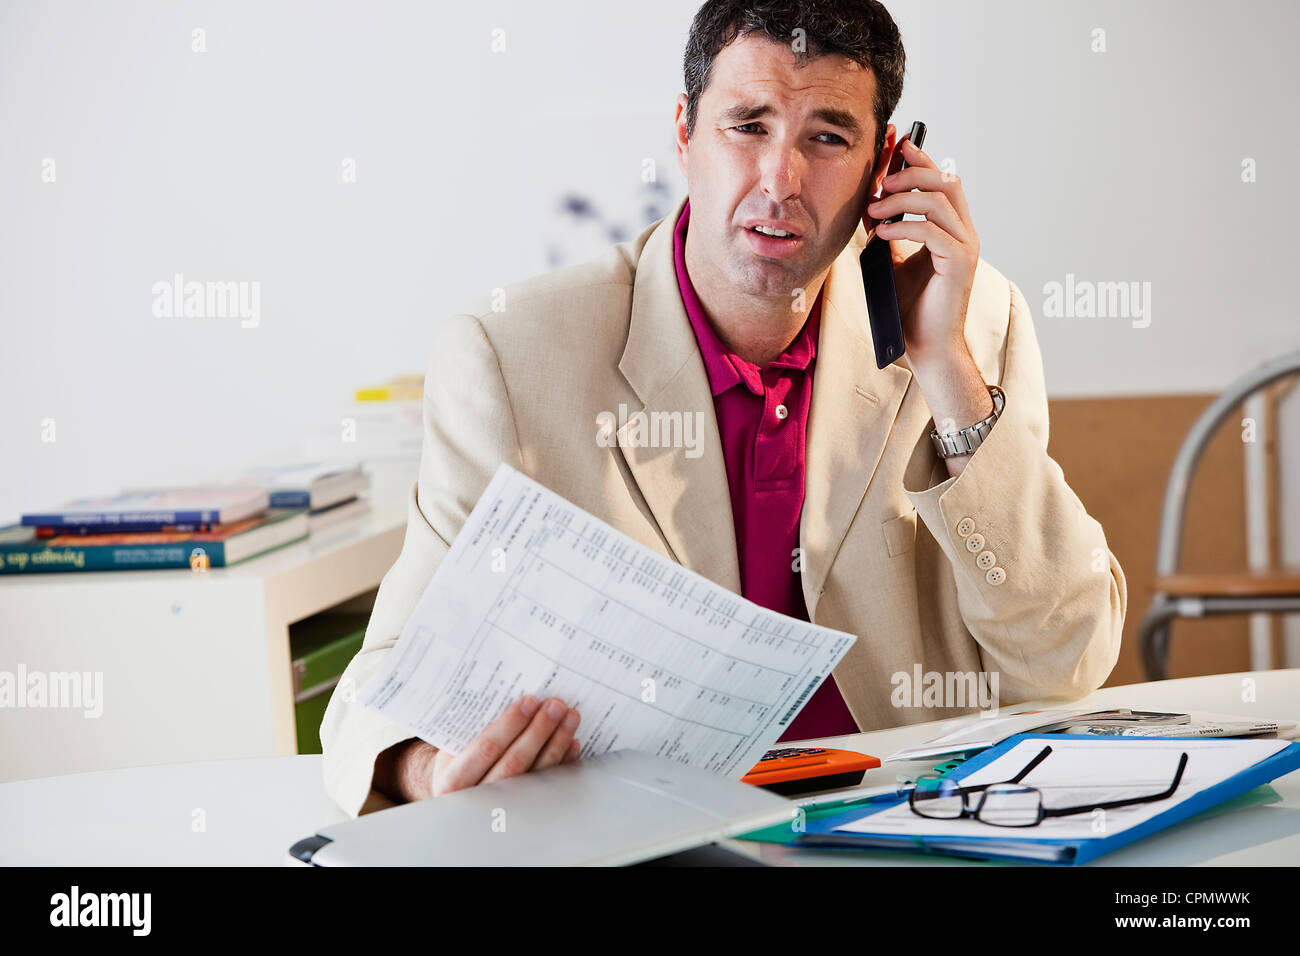 MAN FILLING OUT FORMS Stock Photo